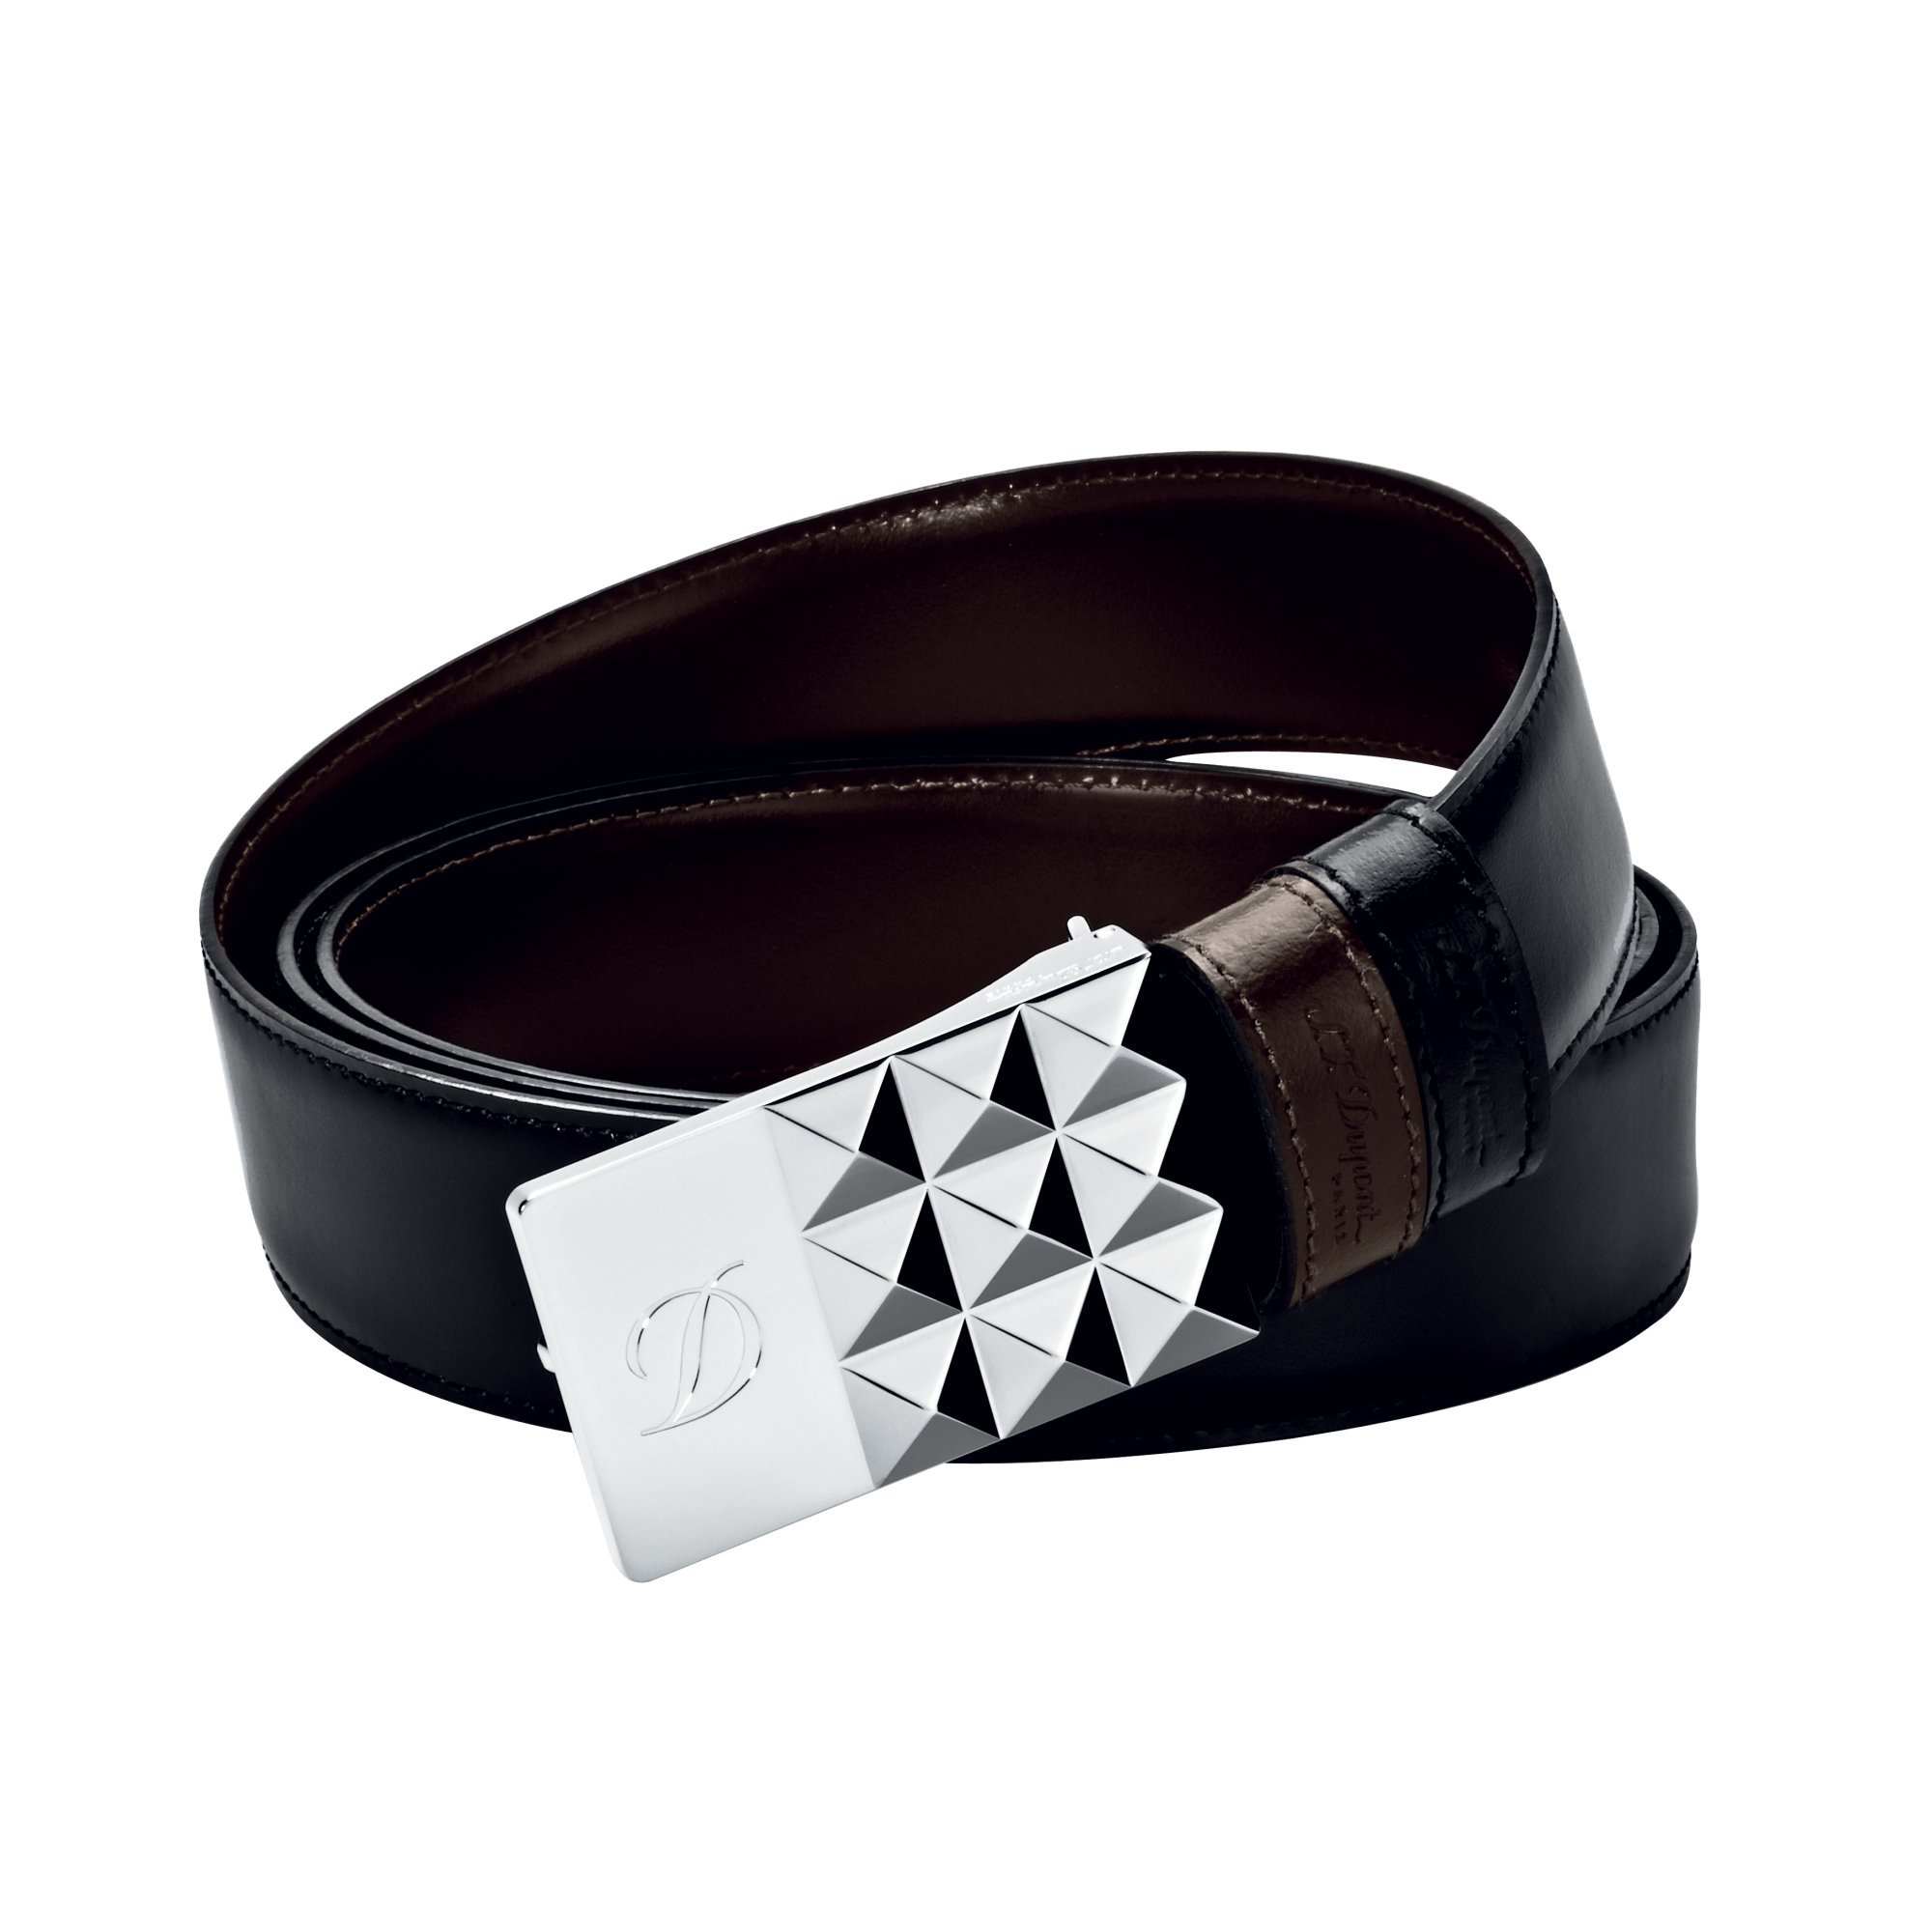 S.T. Dupont 7770120 Business Palladium Finish Reversible Black/Brown Belt